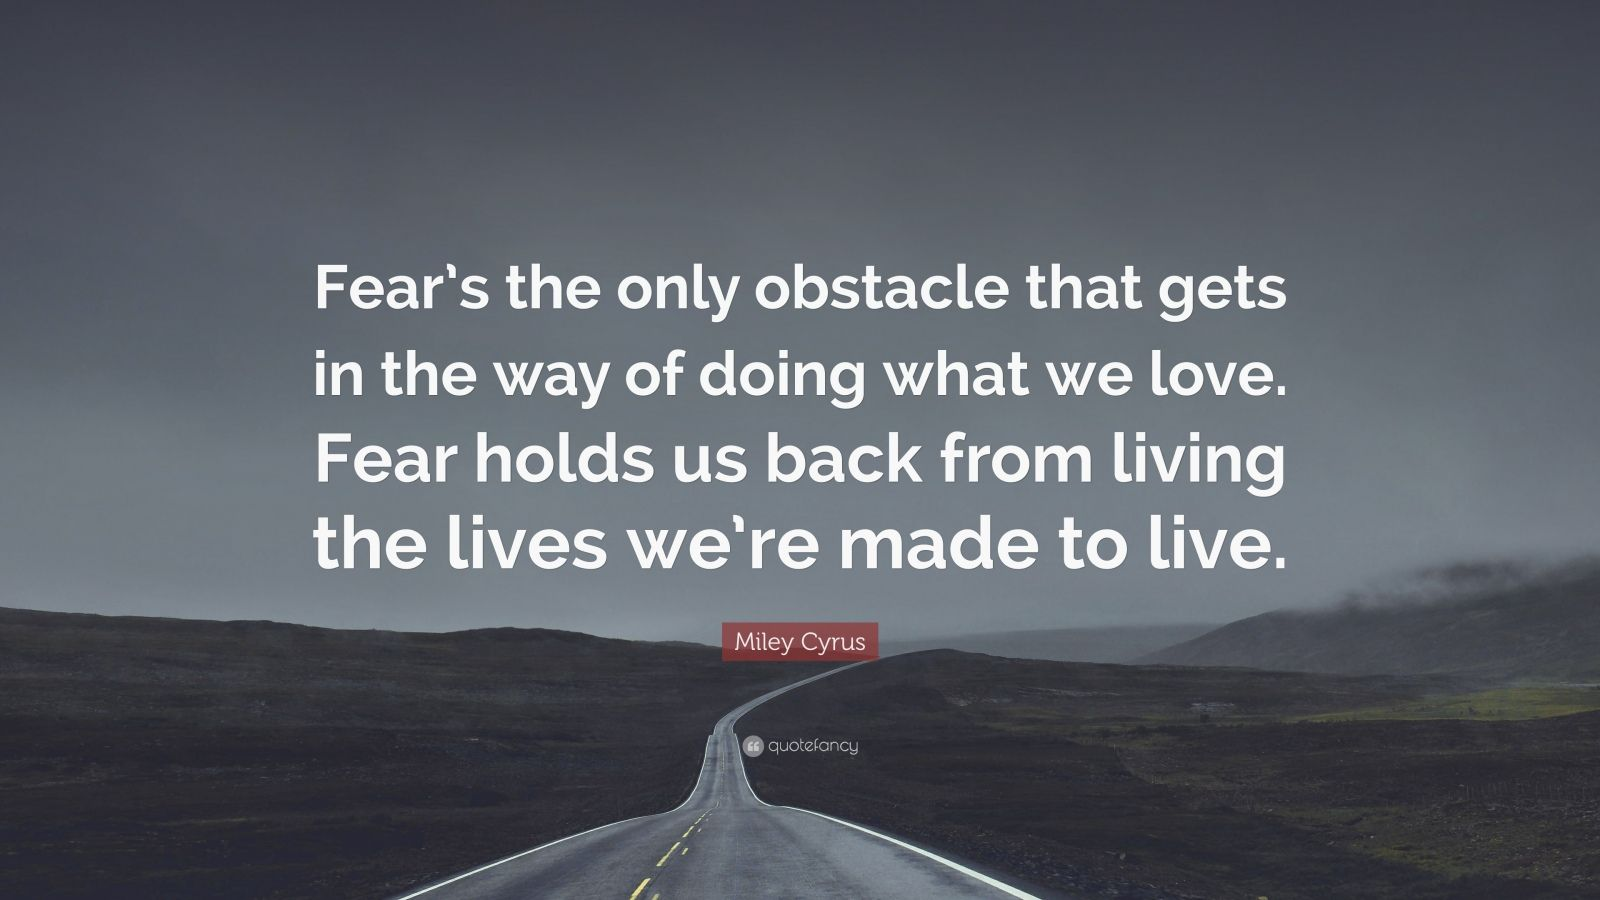 """Miley Cyrus Quote: """"Fear's the only obstacle that gets in the way of doing what we love. Fear holds us back from living the lives we're made to live."""""""